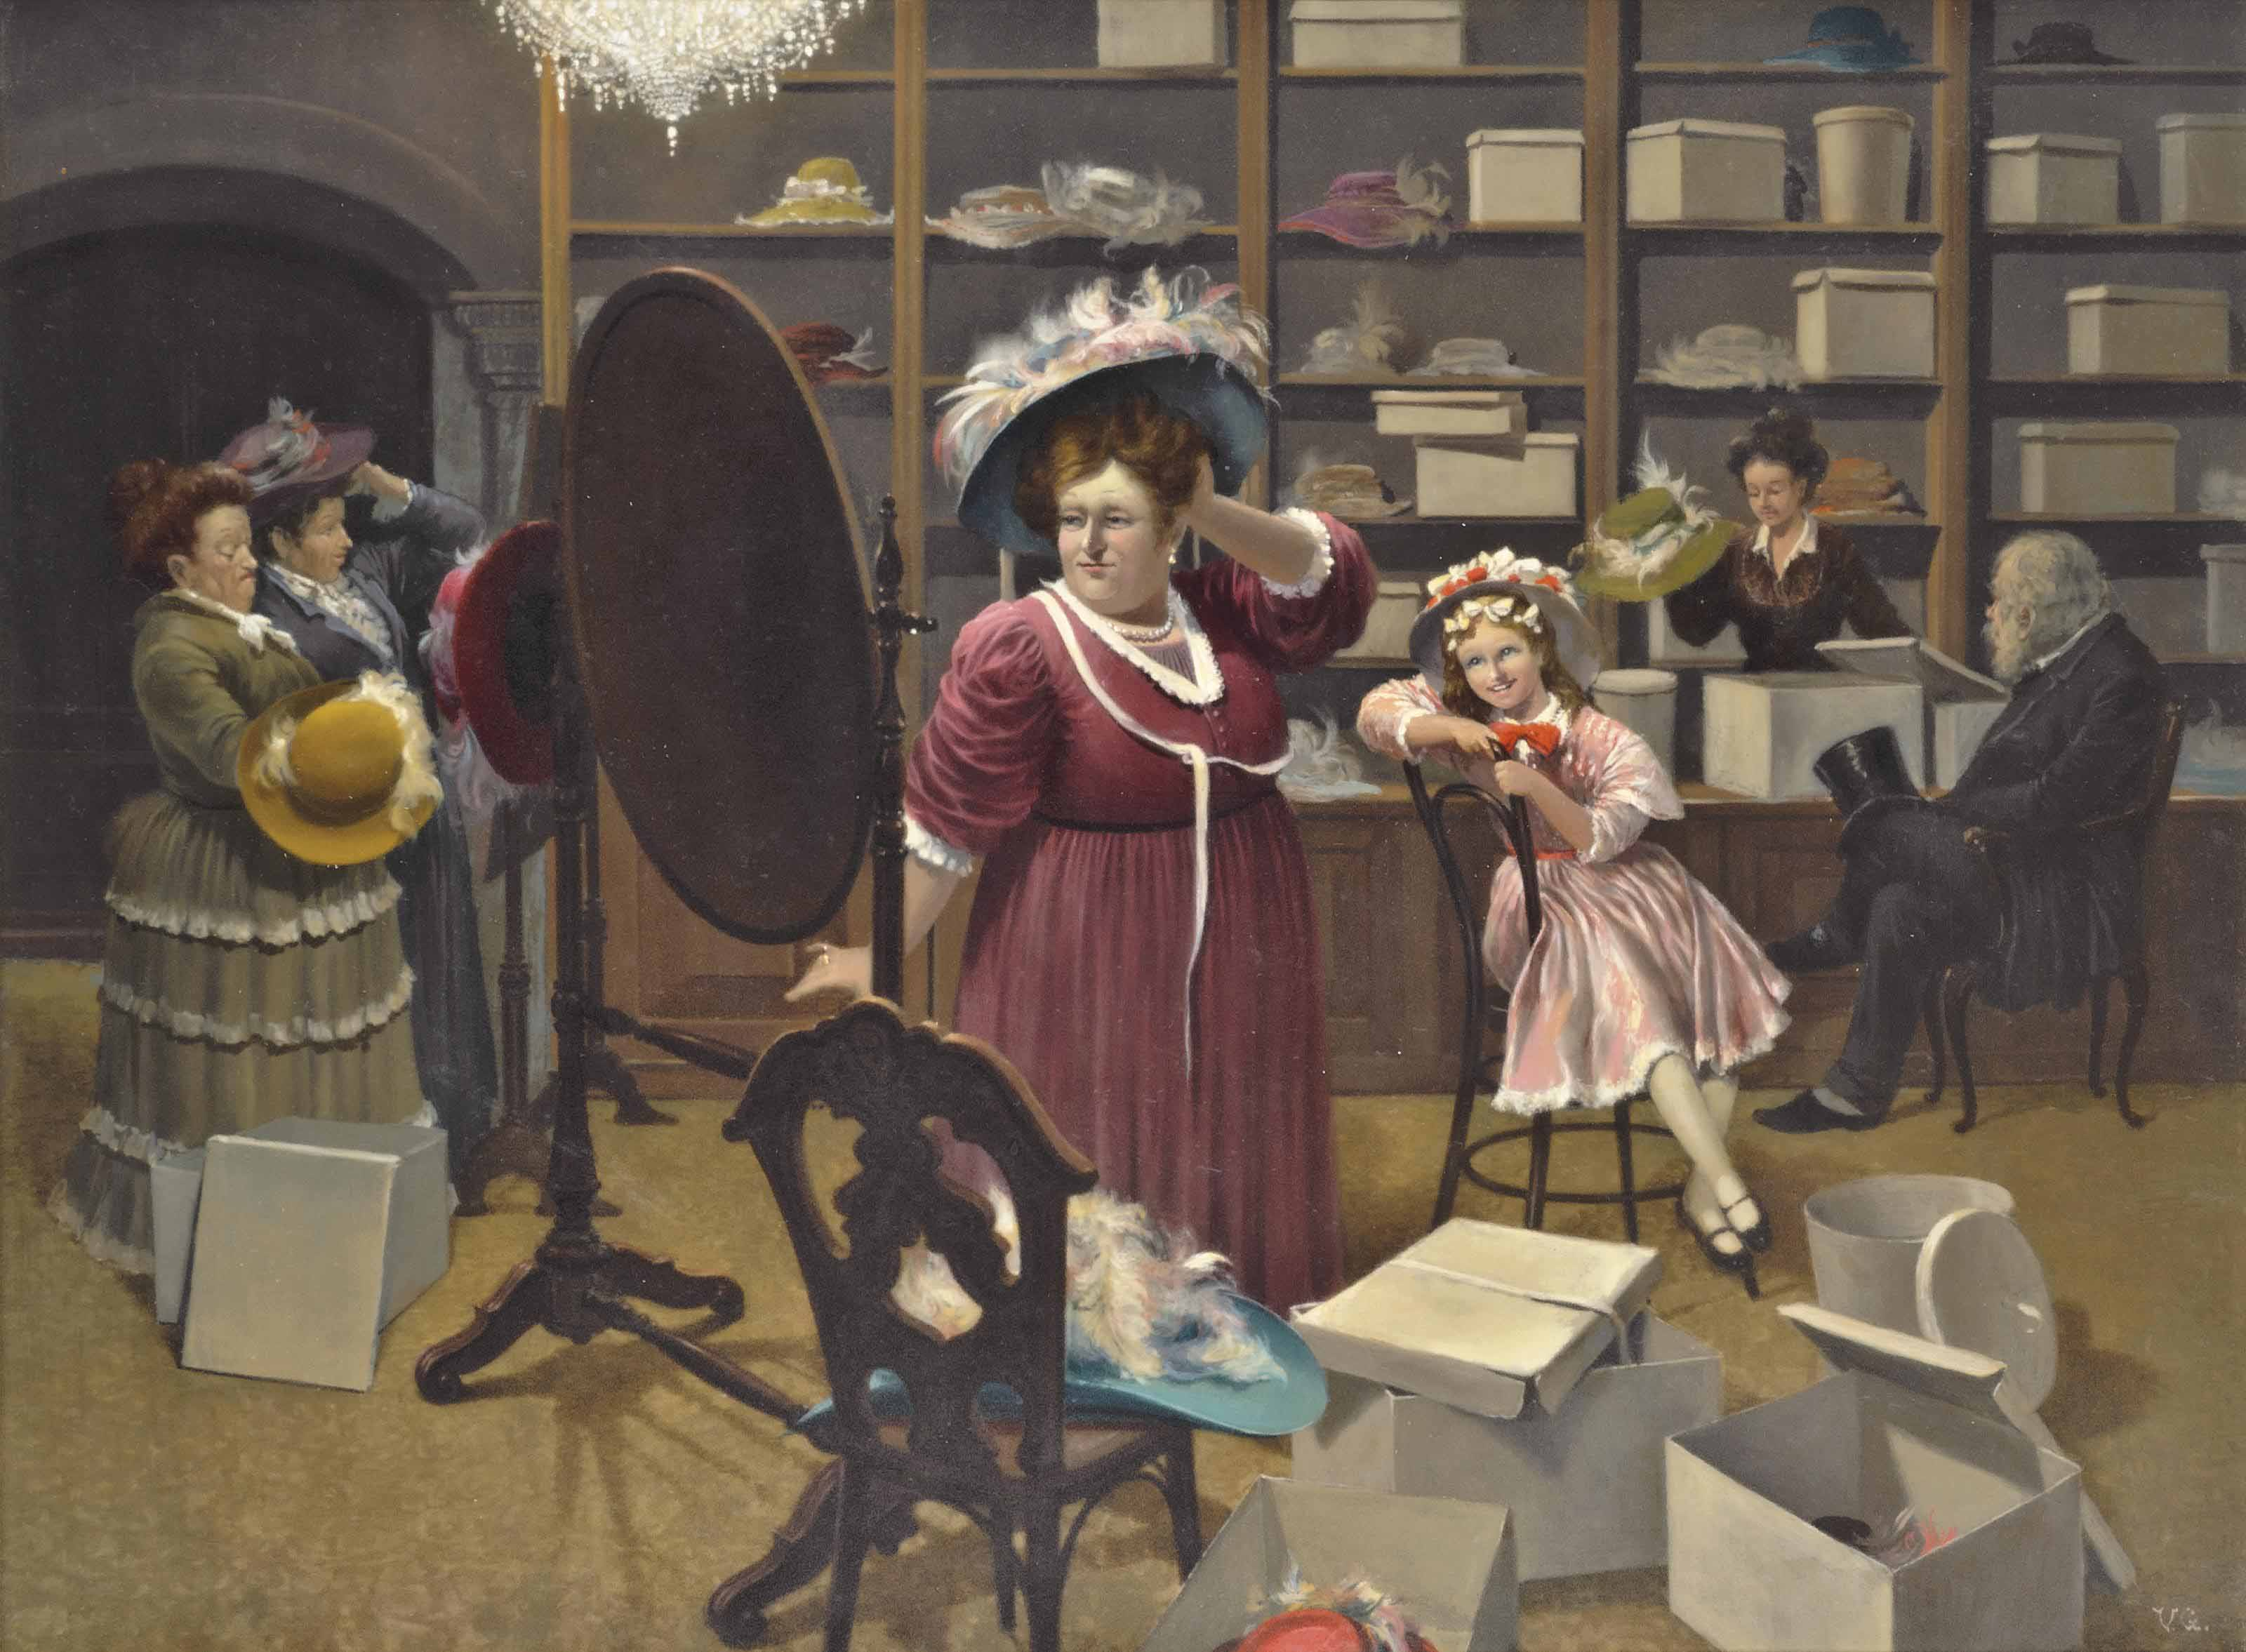 At the milliner's